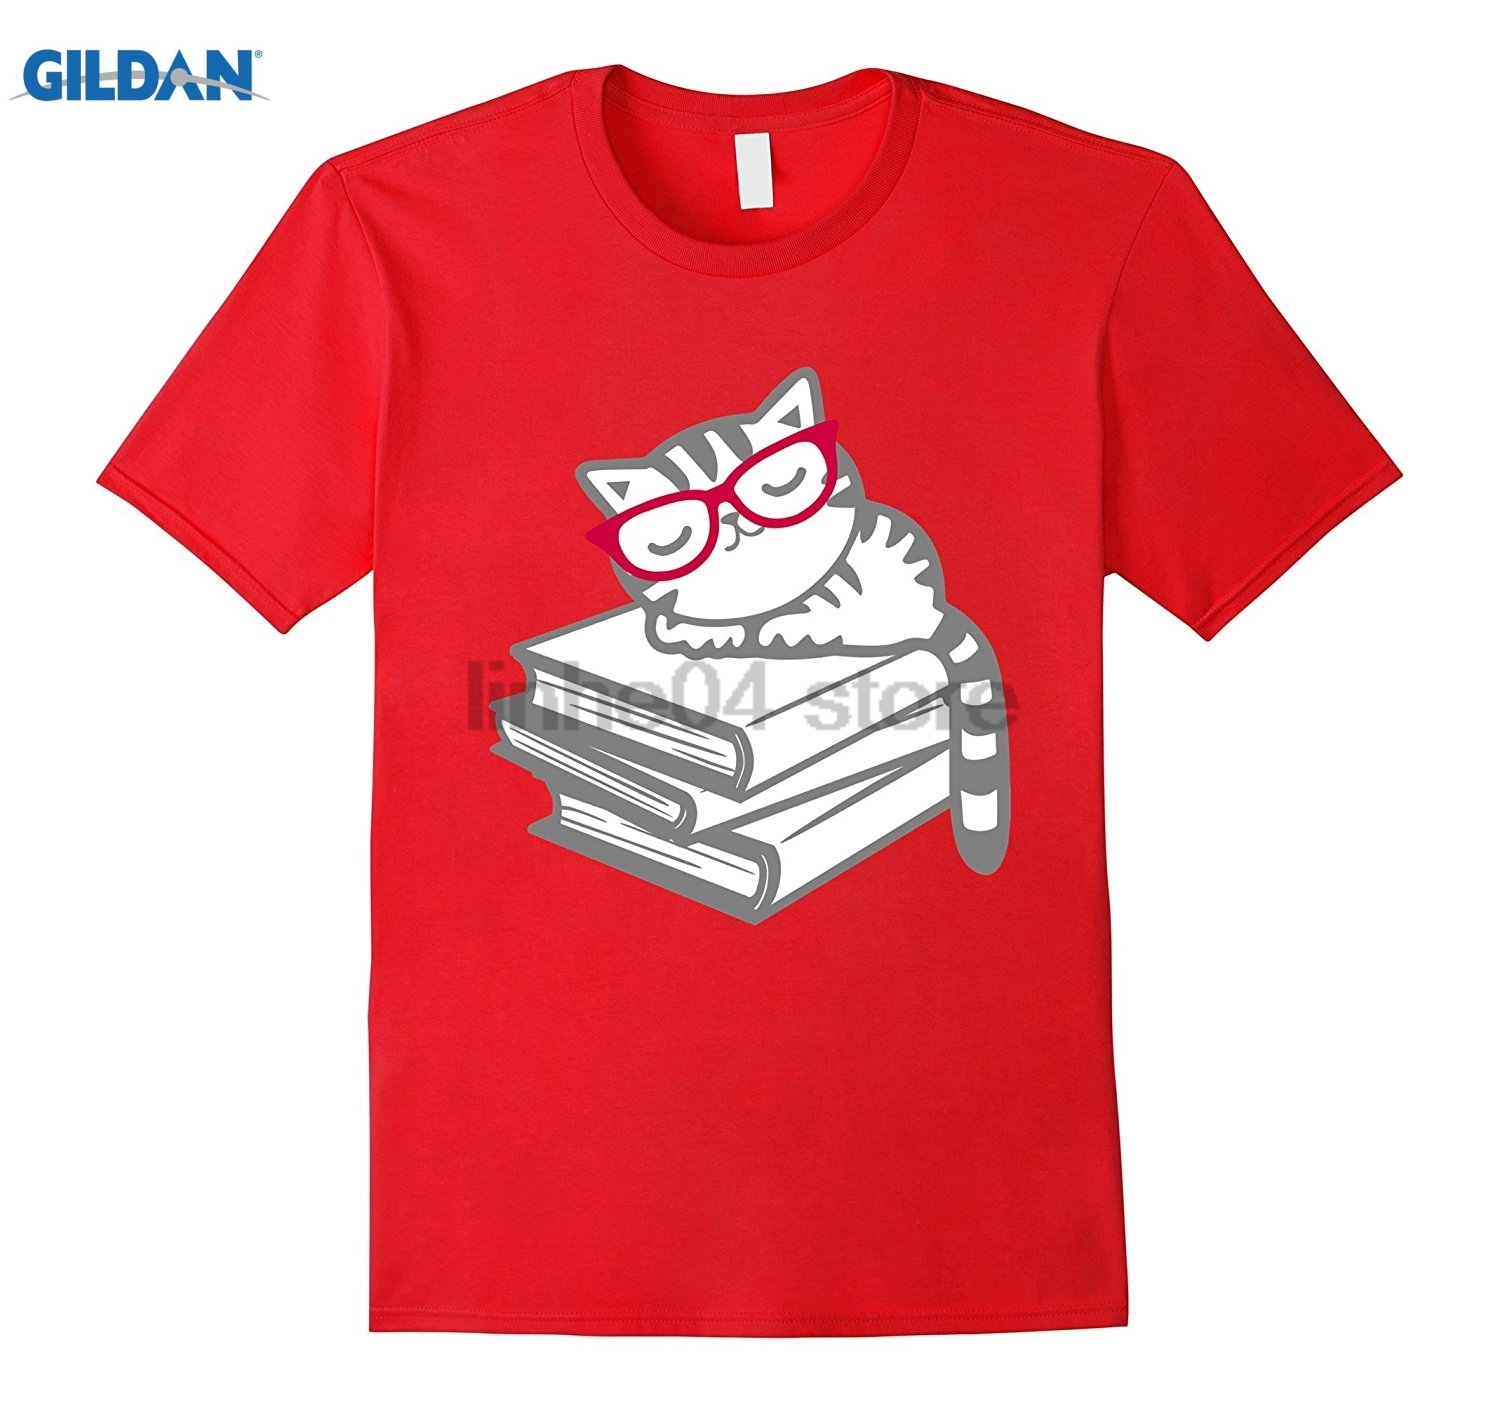 GILDAN Book Nerd Reader with Glasses Cute Geek Funny T-Shirt Womens T-shirt Hot Womens T ...